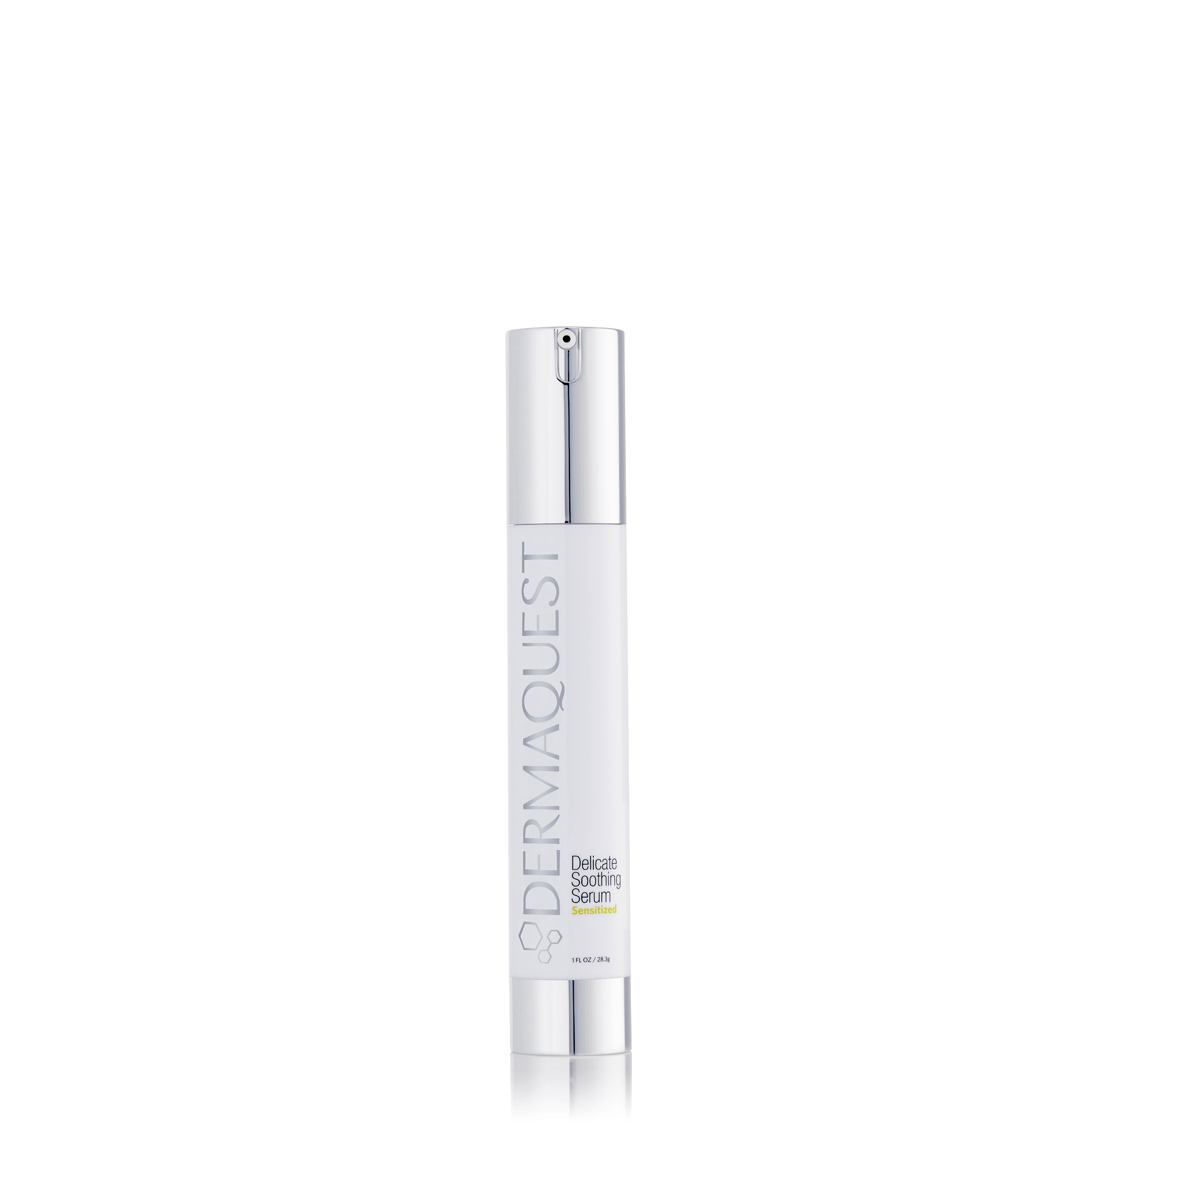 Delicate Soothing Serum- Sensitized